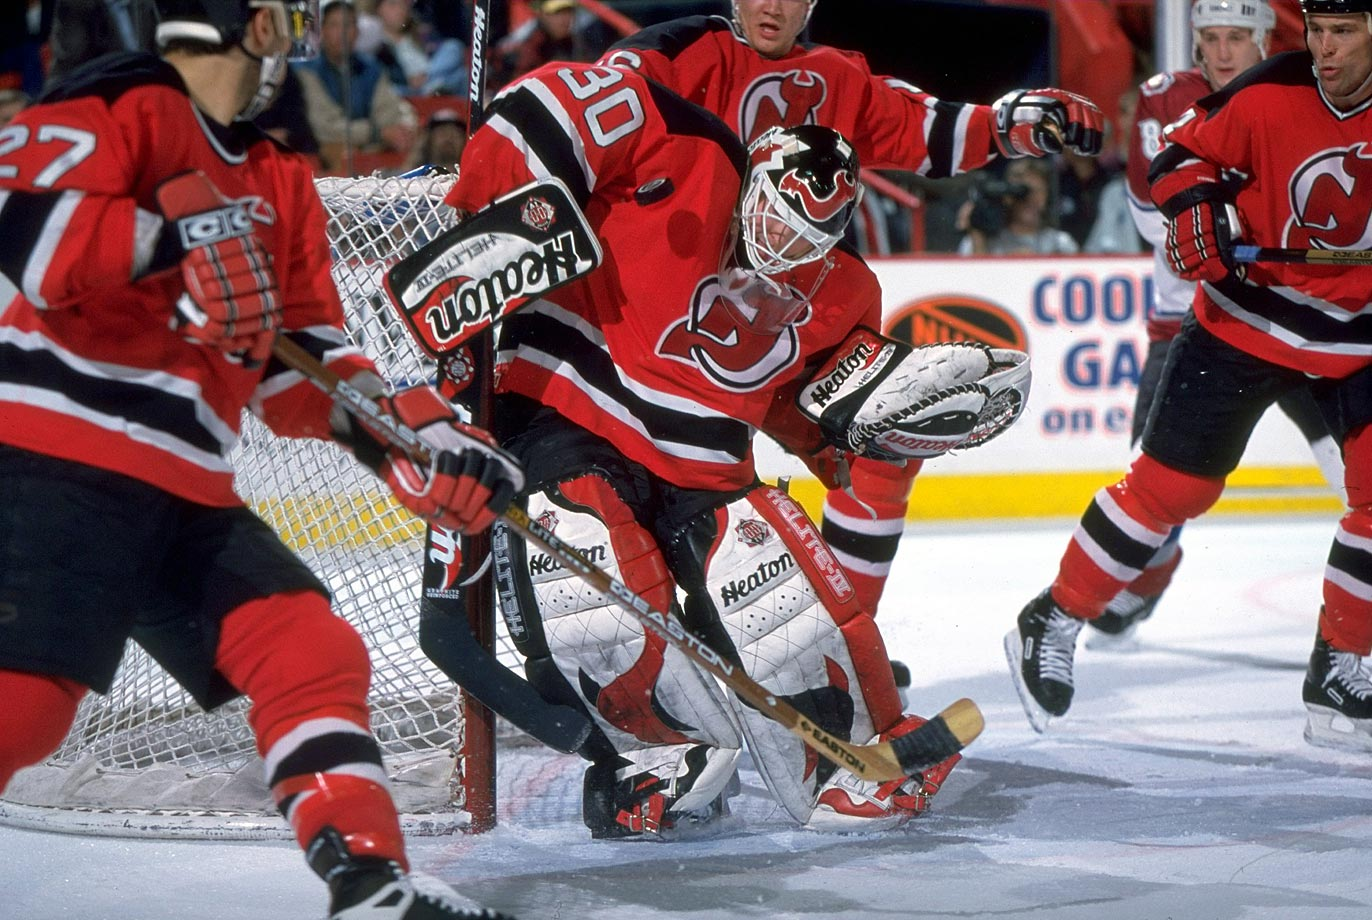 Blessed with a stifling defense in front of him, Brodeur led the NHL with a 1.88 GAA in 1996-97—becoming the first goaltender with a sub-1.90 since Bernie Parent of the Flyers in 1973-74. He also became the first since Montreal's Ken Dryden in 1976-77 to record 10 shutouts in a season.